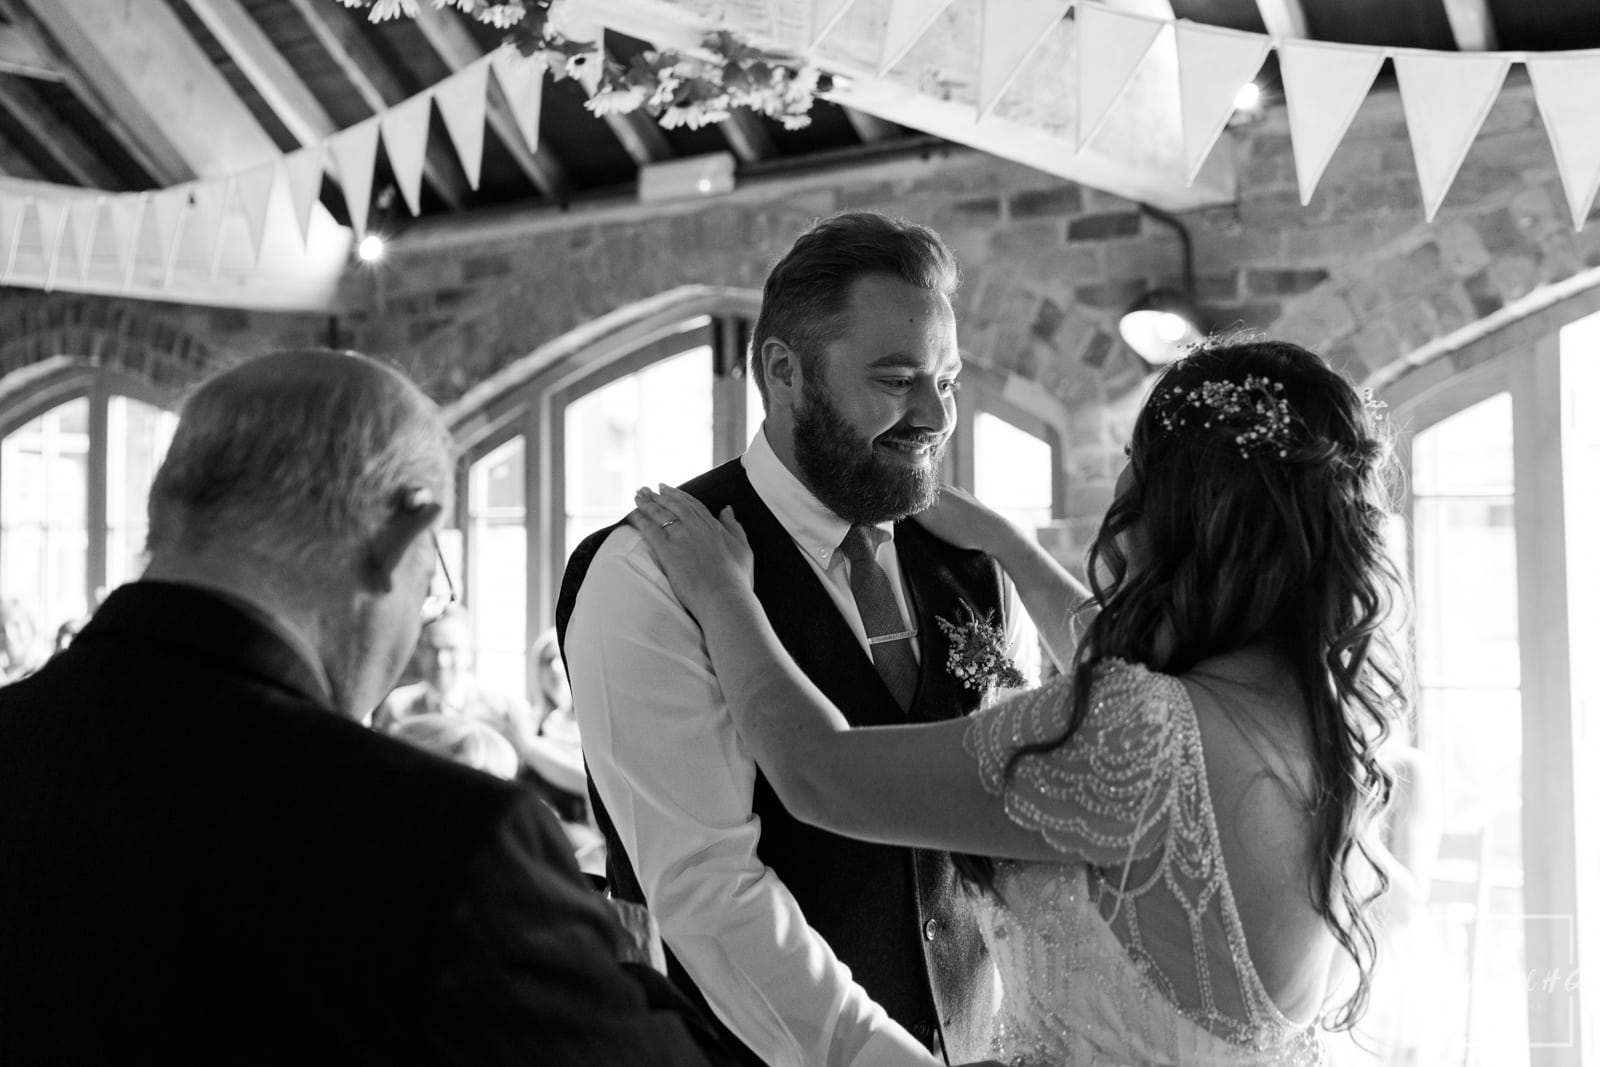 Bride and groom hold each other after their first kiss at their wedding at mapperley farm